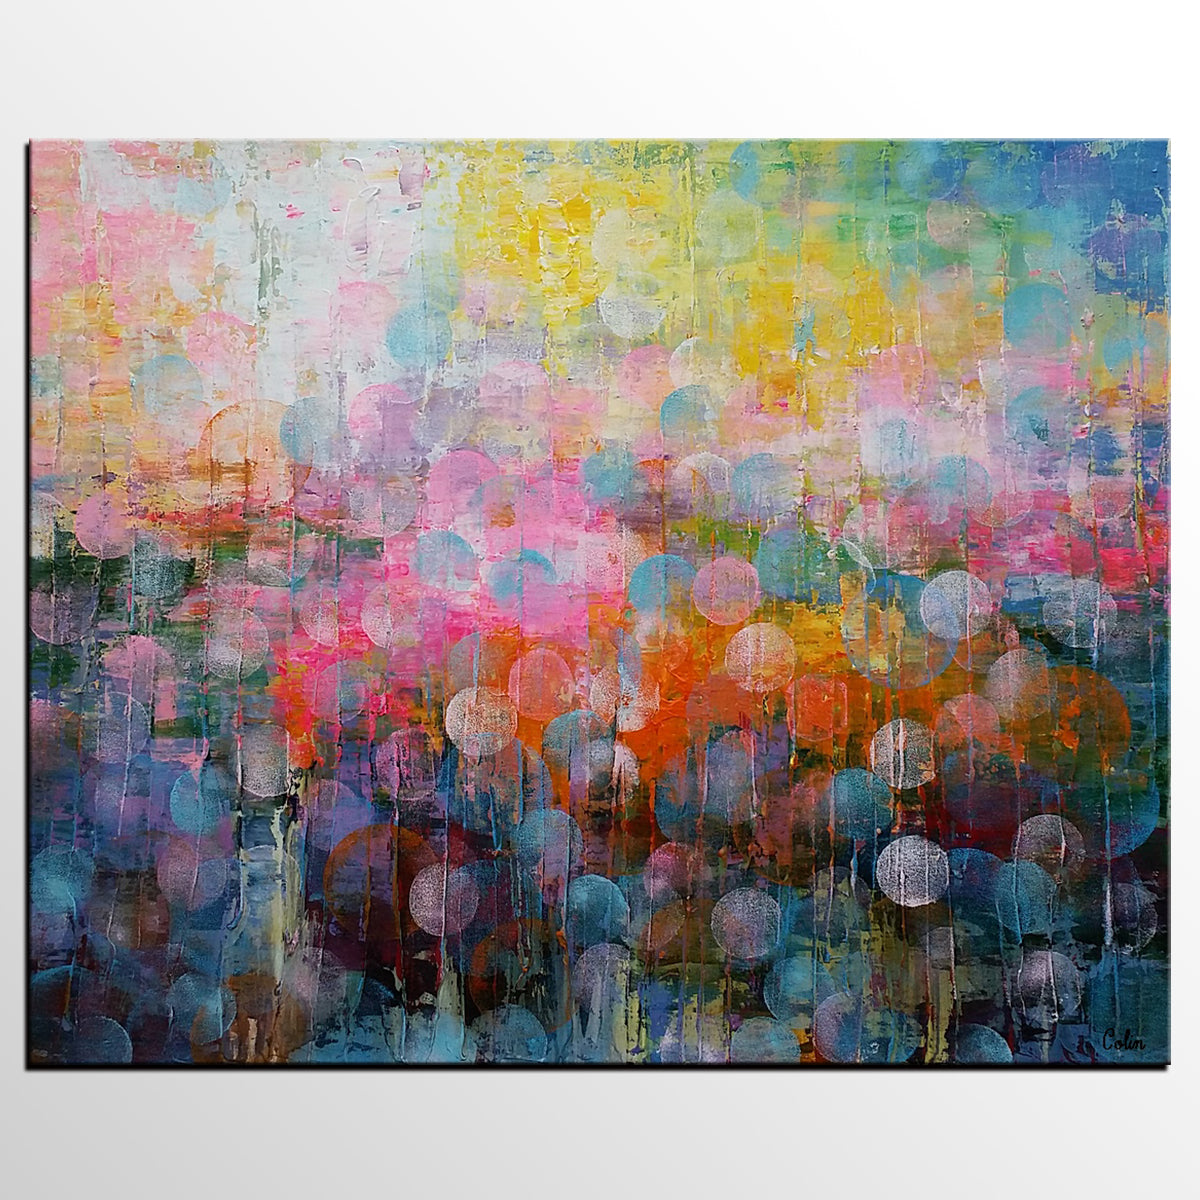 Wall Art, Original Artwork, Abstract Painting, Original Wall Art, Abstract Art, Large Art, Canvas Art, Canvas Painting